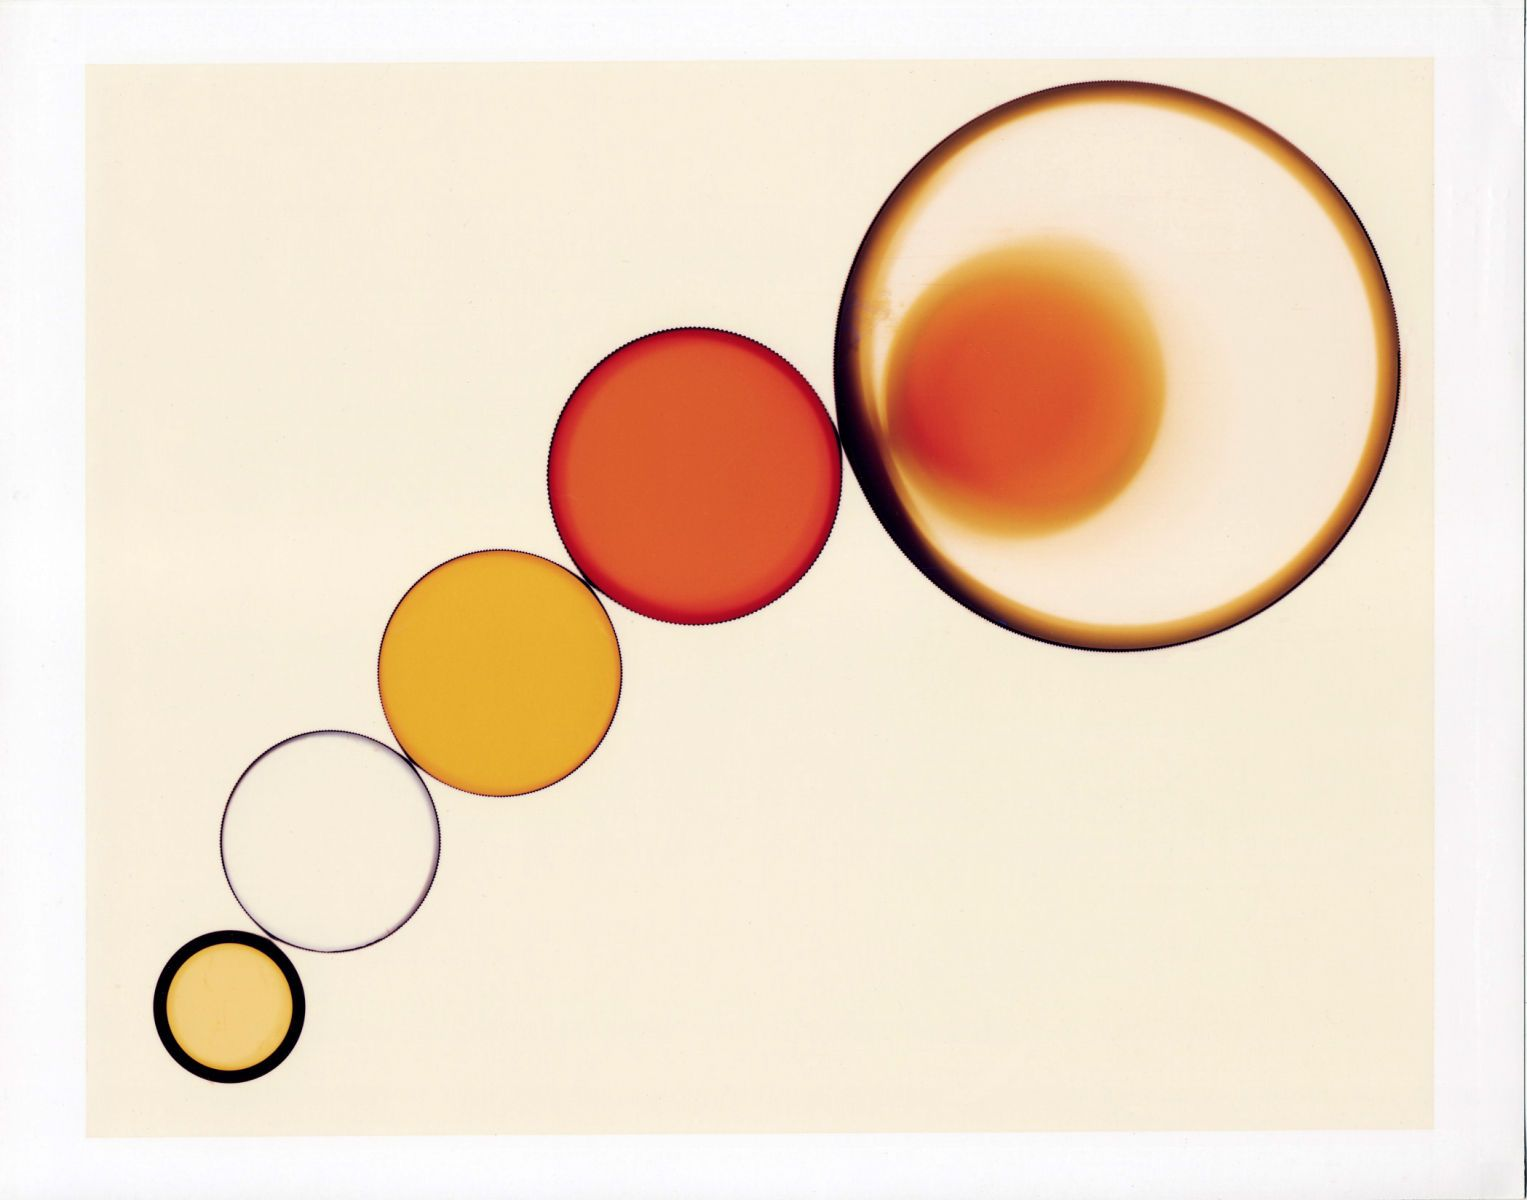 1circles_red_orange_yellow_black